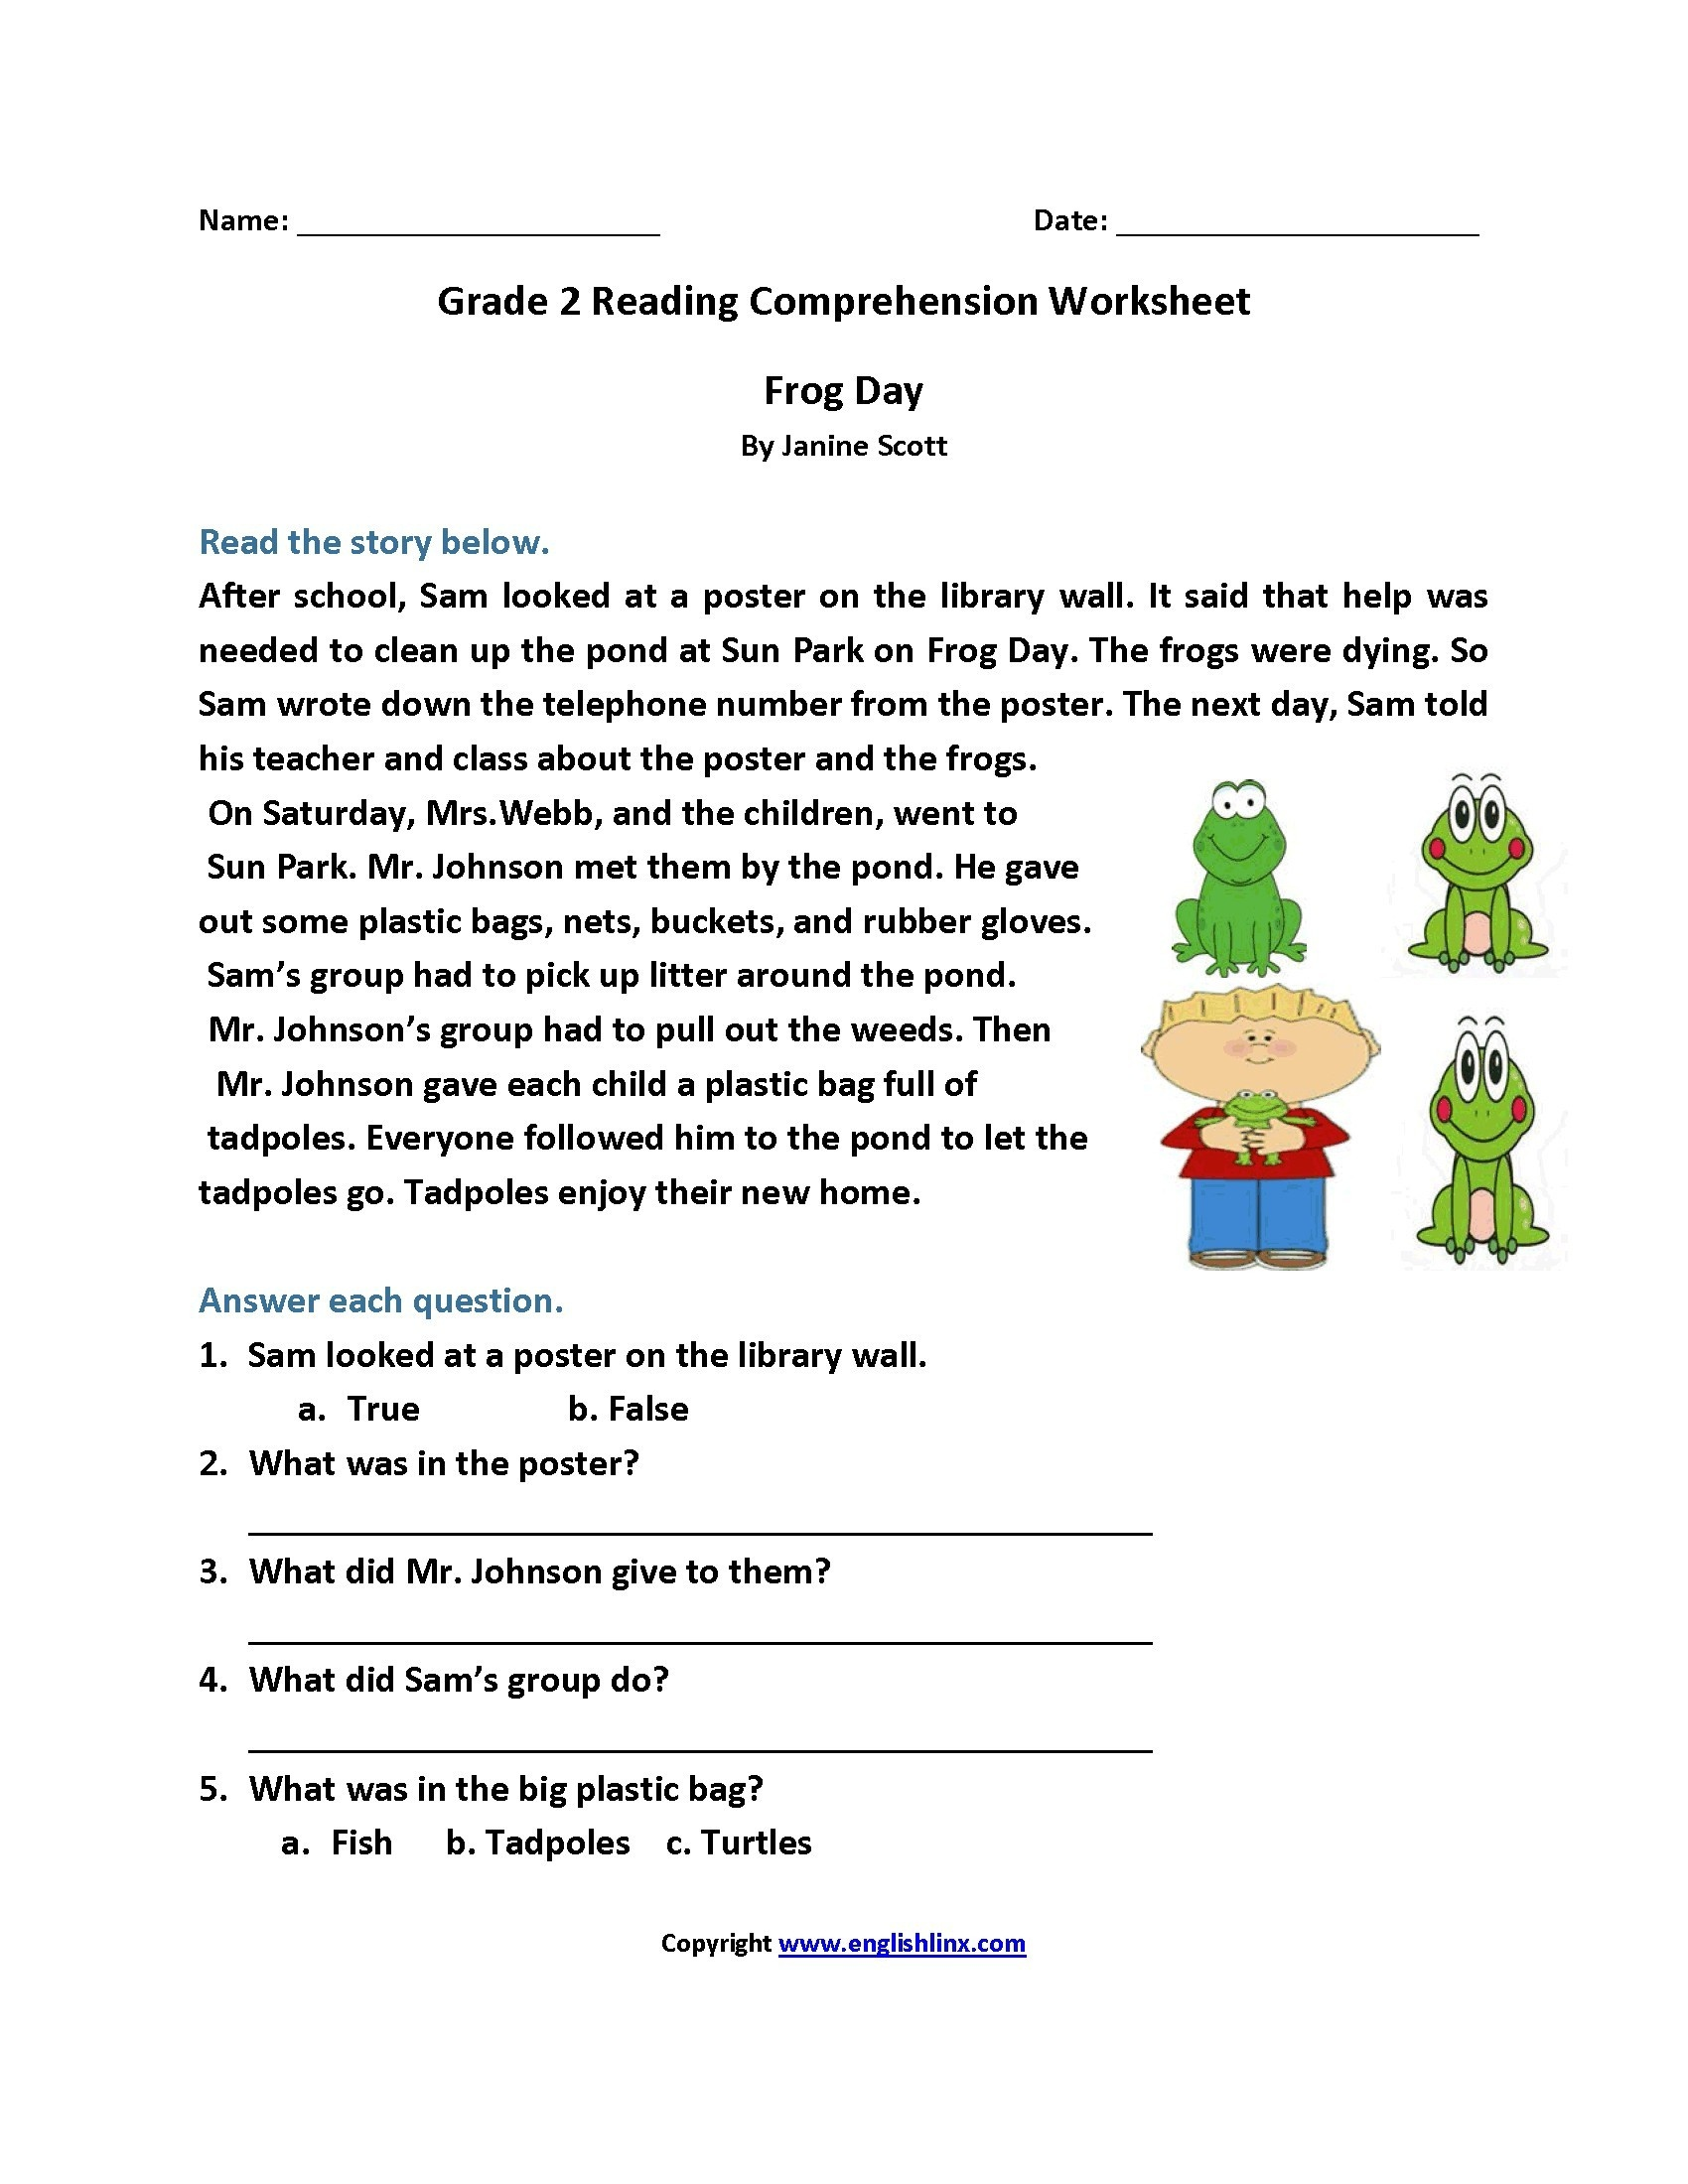 Worksheet : Free Printable Short Stories With Comprehension - Free Printable Comprehension Worksheets For Grade 5